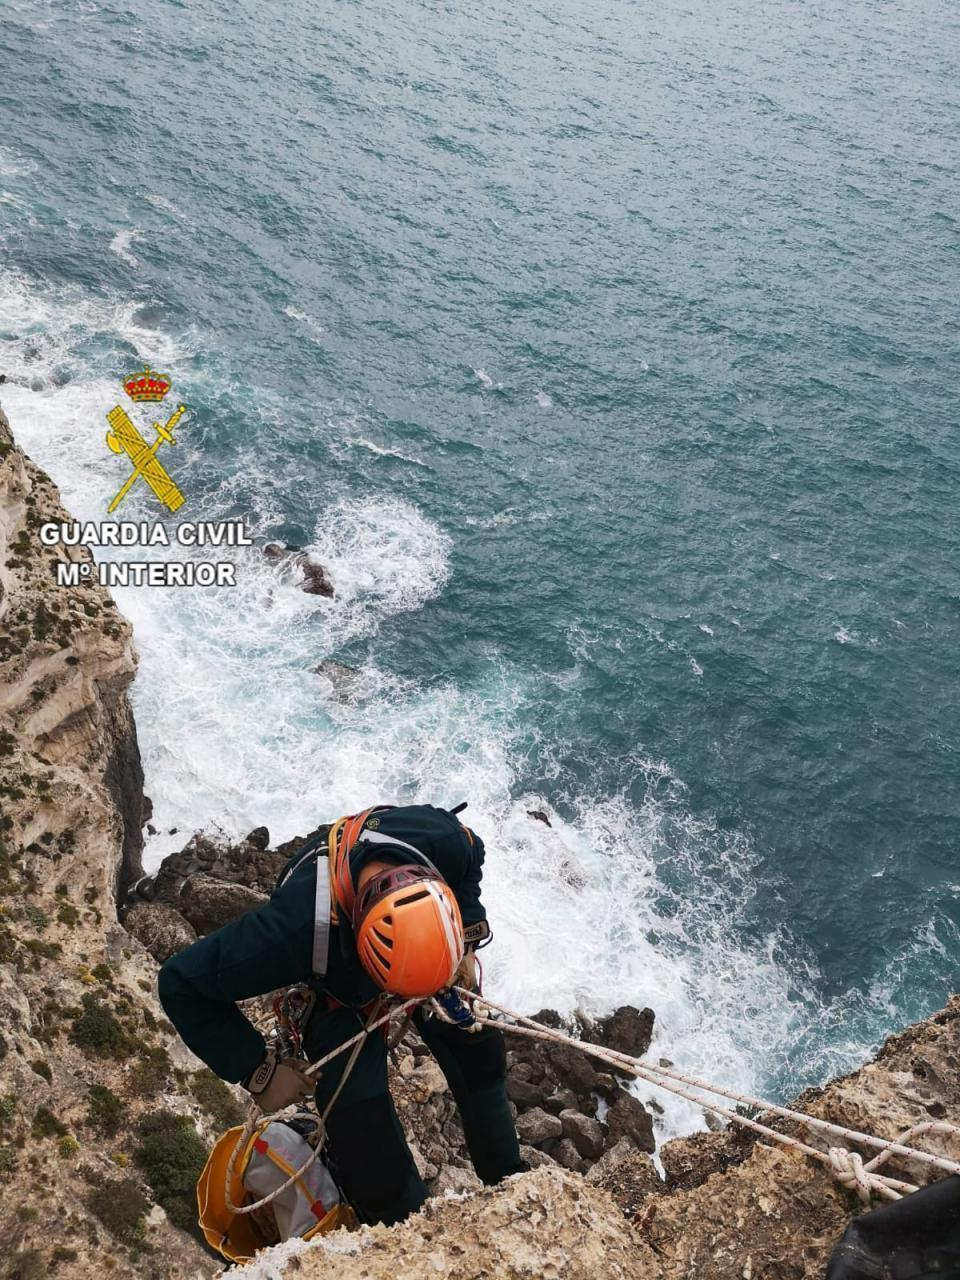 Guardia Civil Officers abseil down Cap Blanc cliffs.